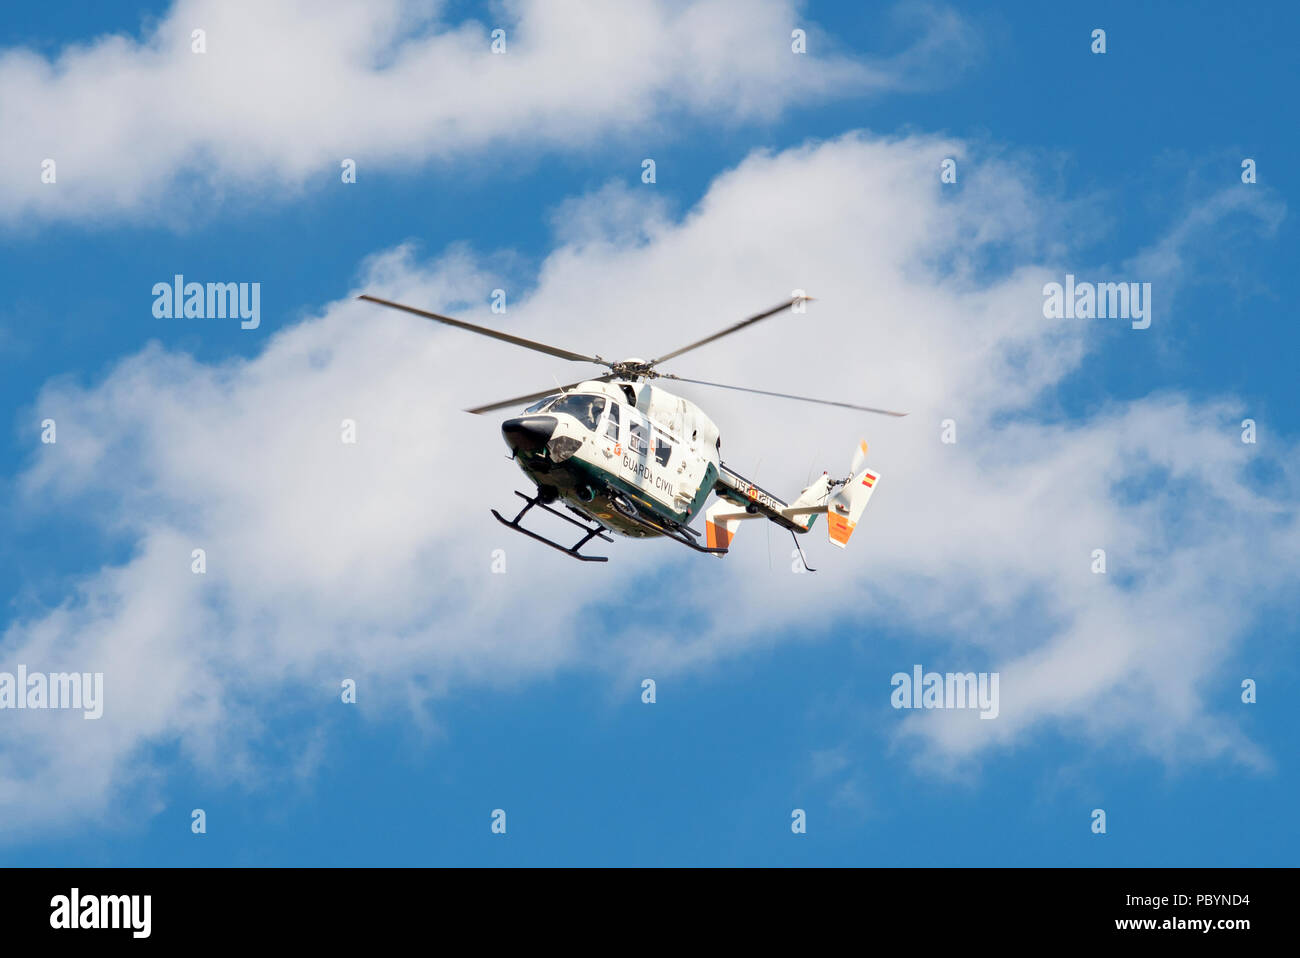 Burgos, Spain - July 23, 2018: Guardia Civil helicopter patrolling the sky. - Stock Image